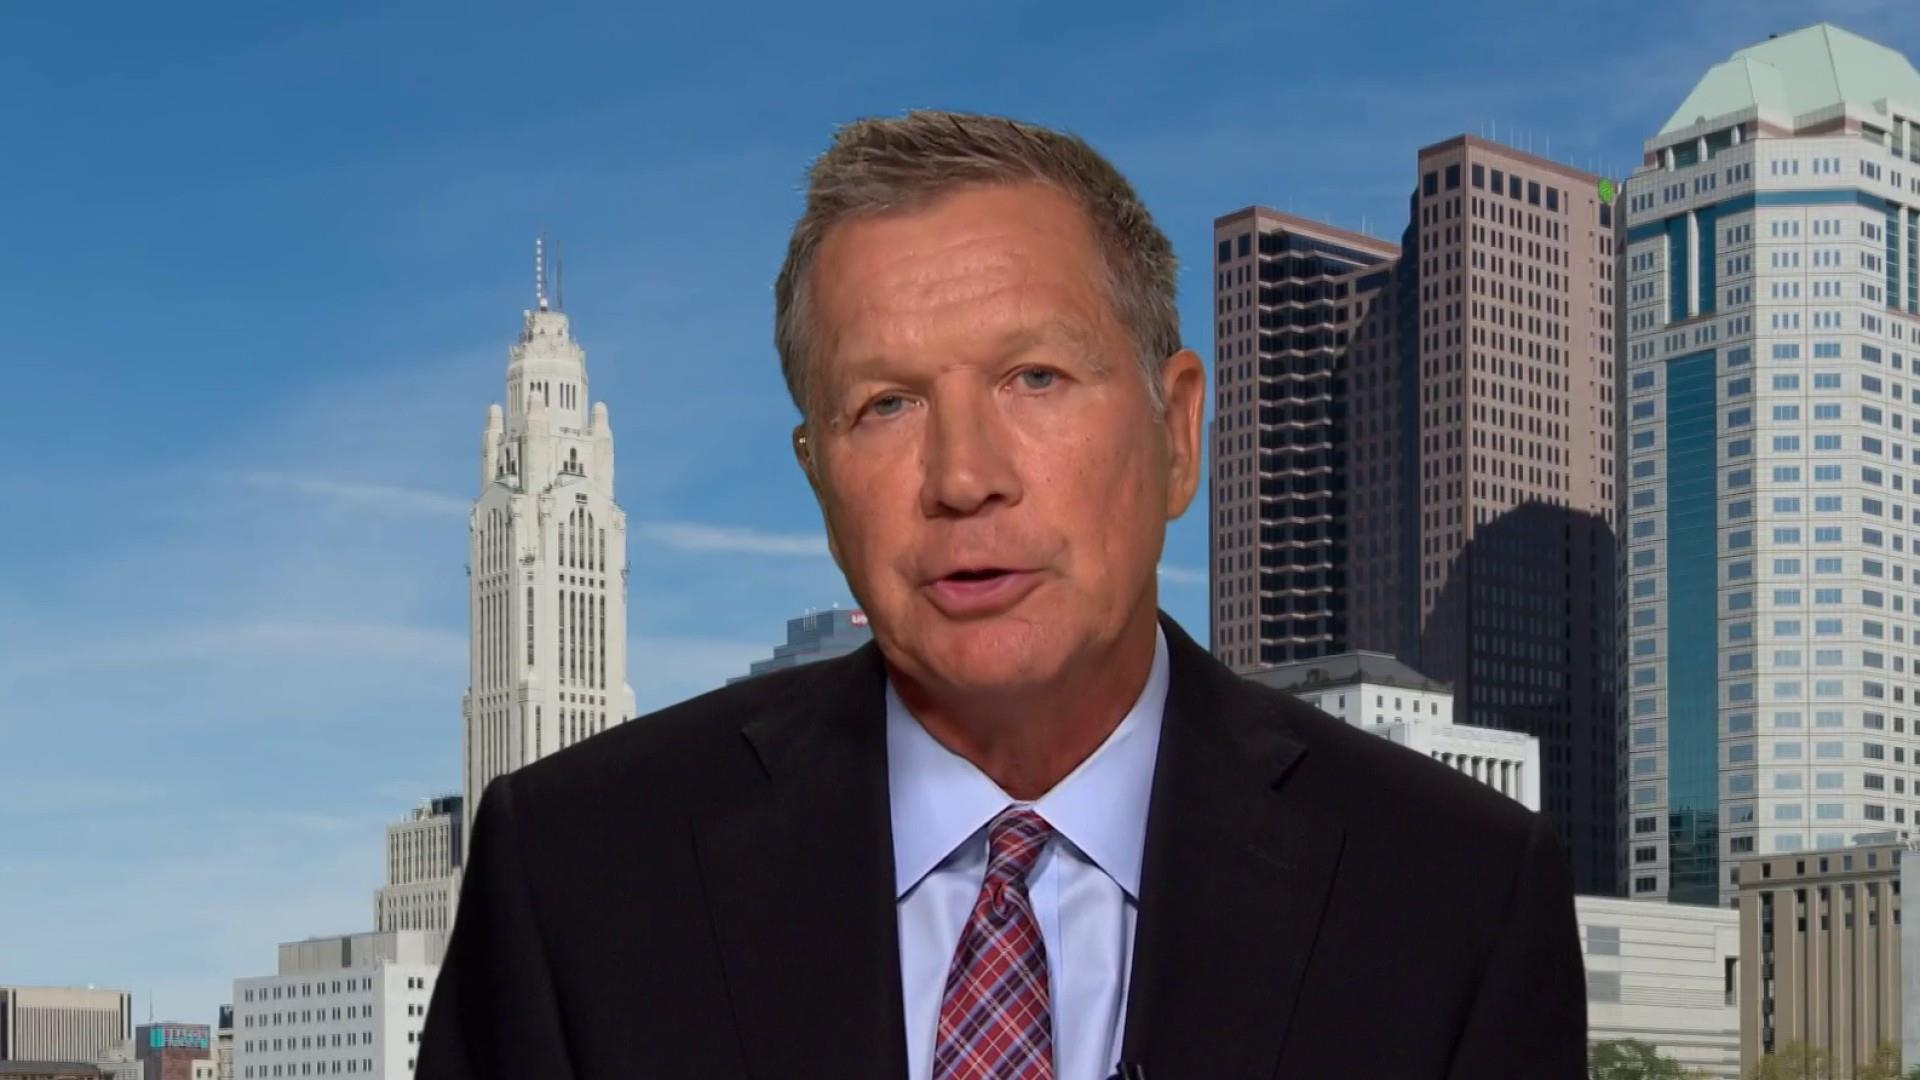 John Kasich on McCain: He'll inspire the next generation